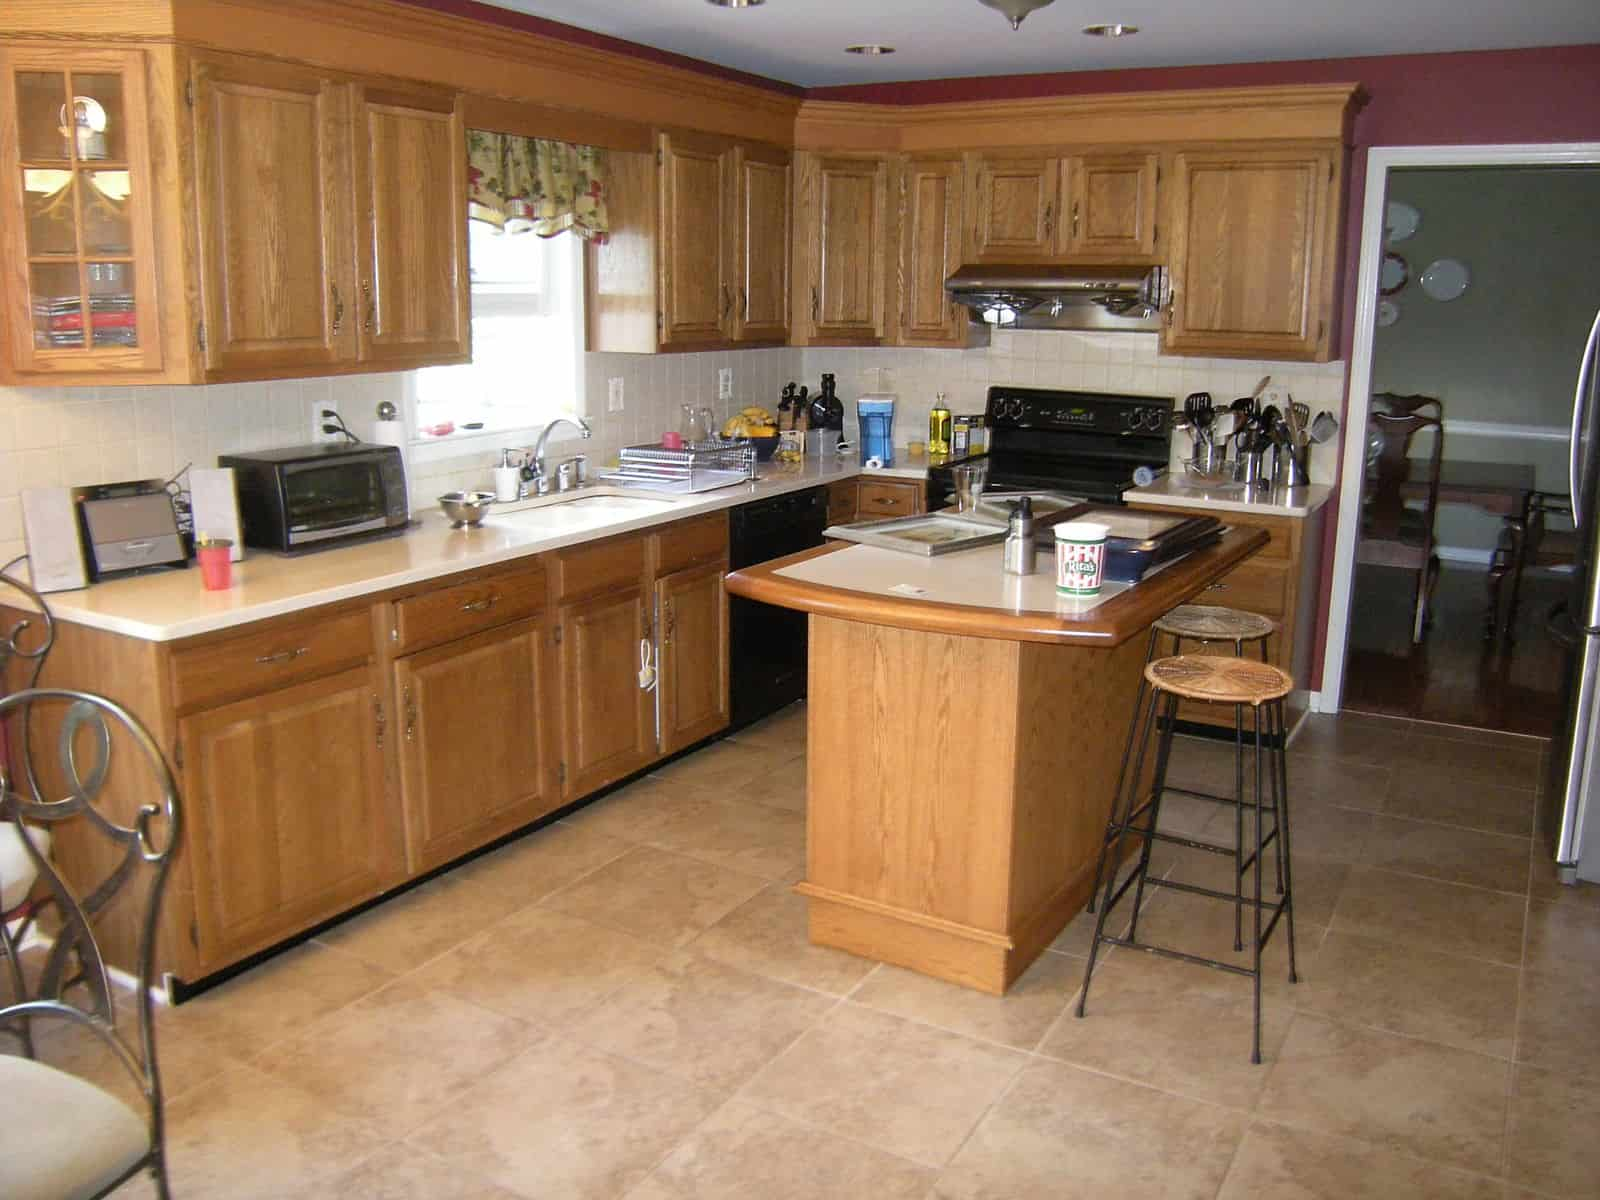 Kitchen Remodel vs. Facelift | HeartWorkOrg.